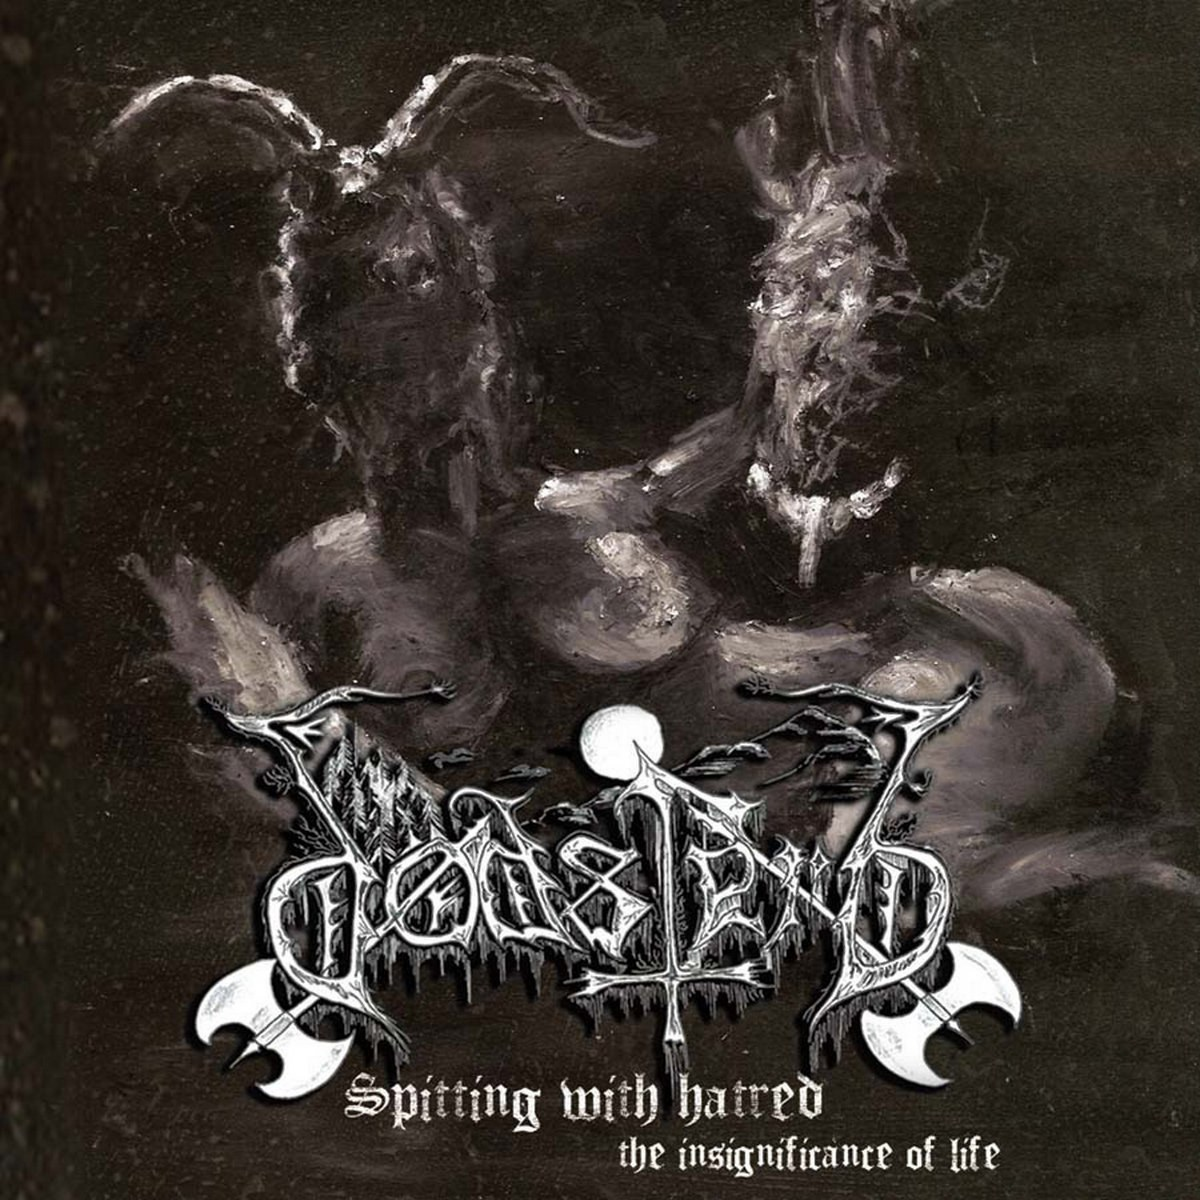 Review for Dødsferd - Spitting With Hatred the Insignificance of Life